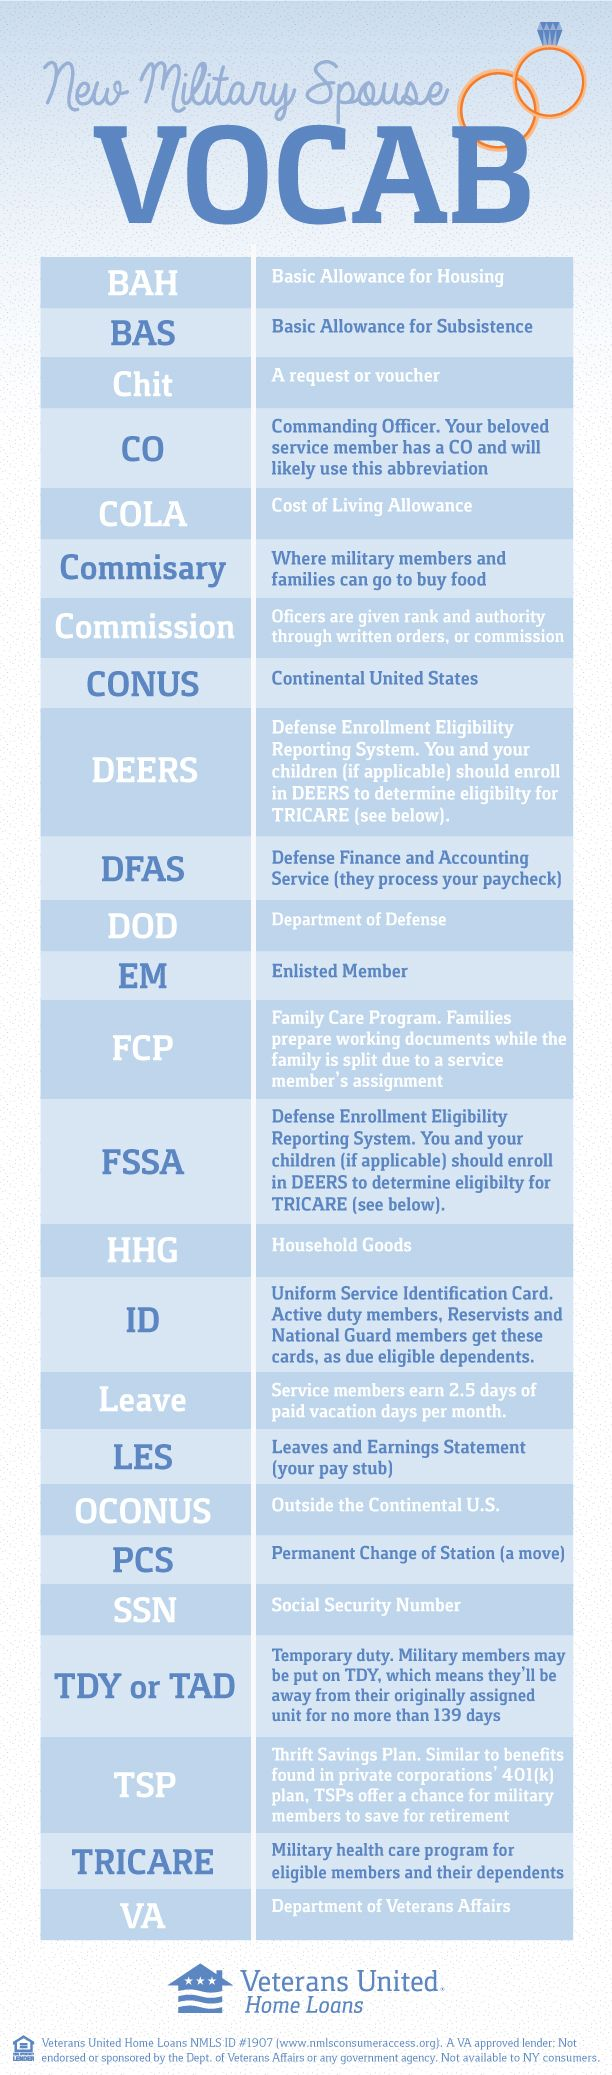 Military abbreviations and terminology can be intimidating--especially if you're a new #militaryspouse. This list can get you started! #military #milso